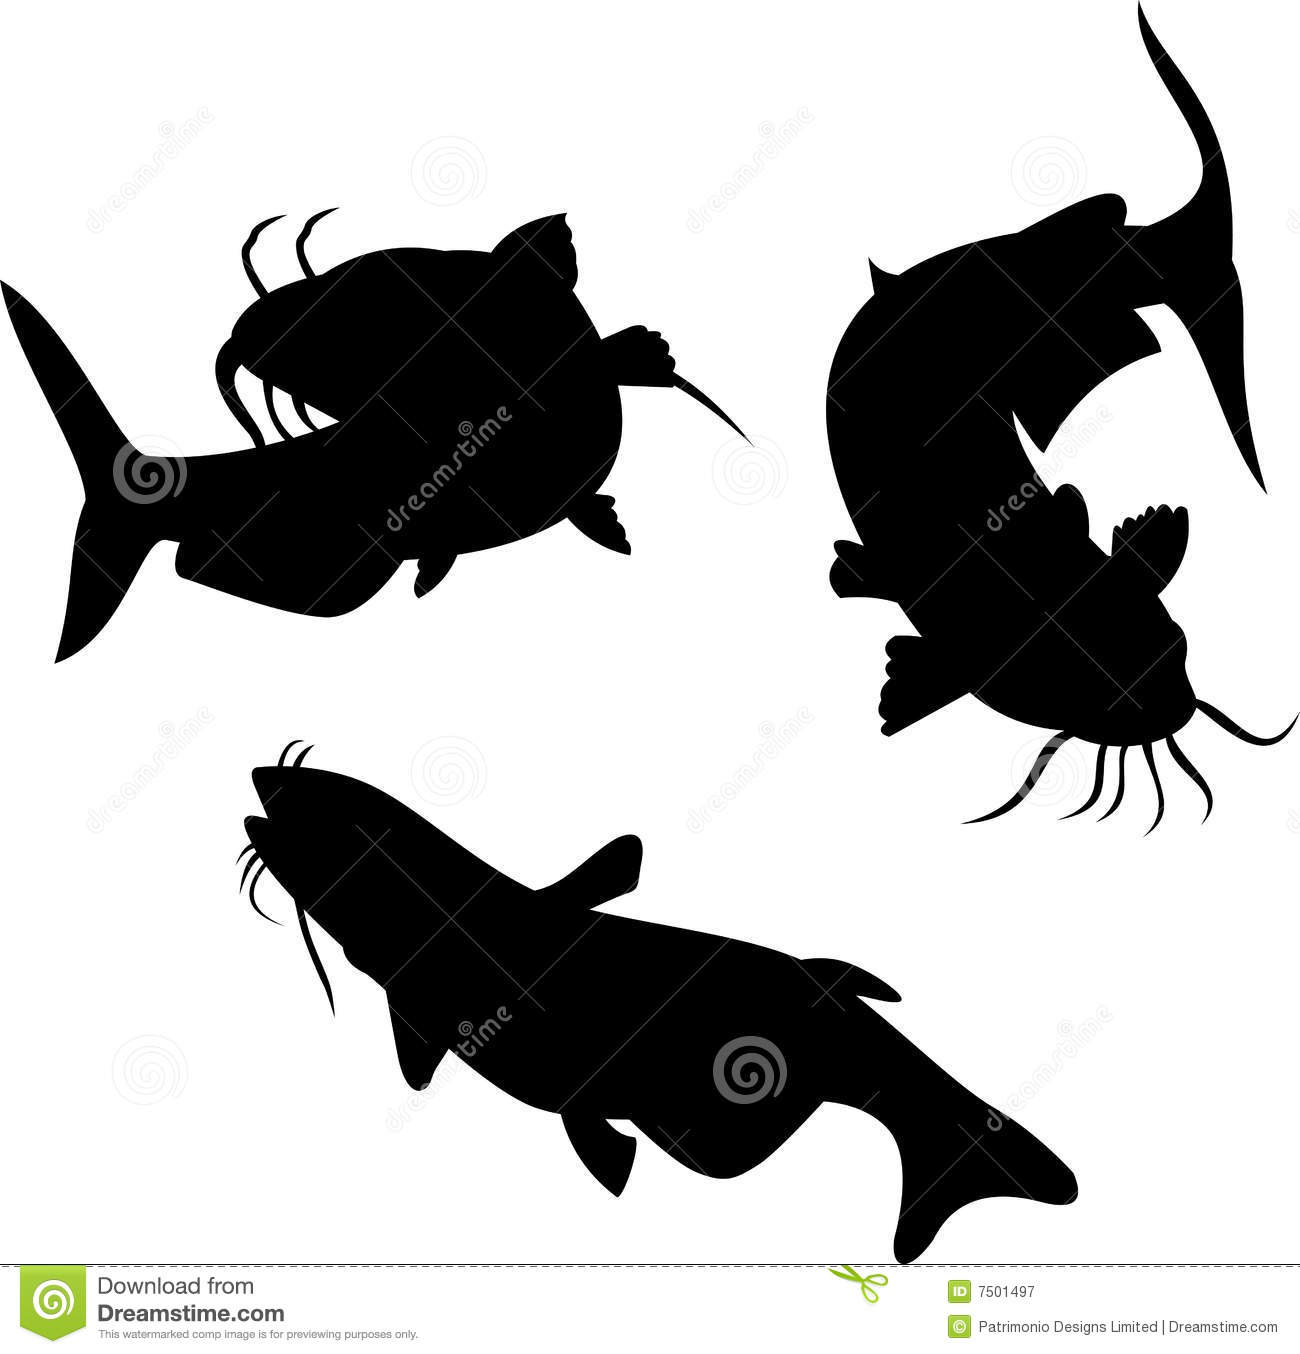 Free Pike Icons Vector besides Depositphotos Stock Illustration Black Silhouette Turtle Symbol together with Stock Photo Watercolor Hand Paint Mermaid Holding A Flower On White Background furthermore Bluegill Panfish Vector Illustration Native American Fish likewise Fire Dancing Clipart. on stock illustration fish silhouette